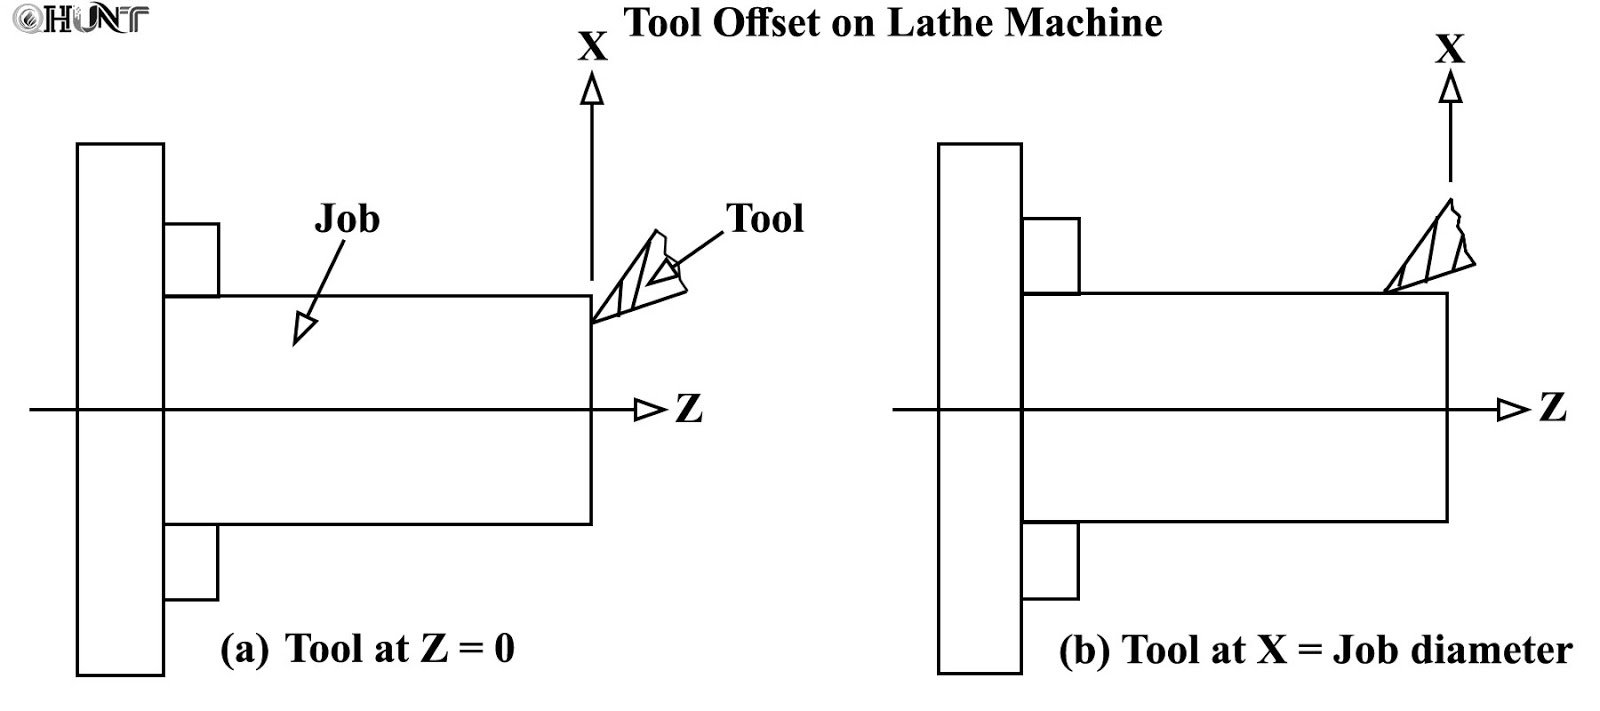 medium resolution of taking tool offset on lathe machine and proving selected program